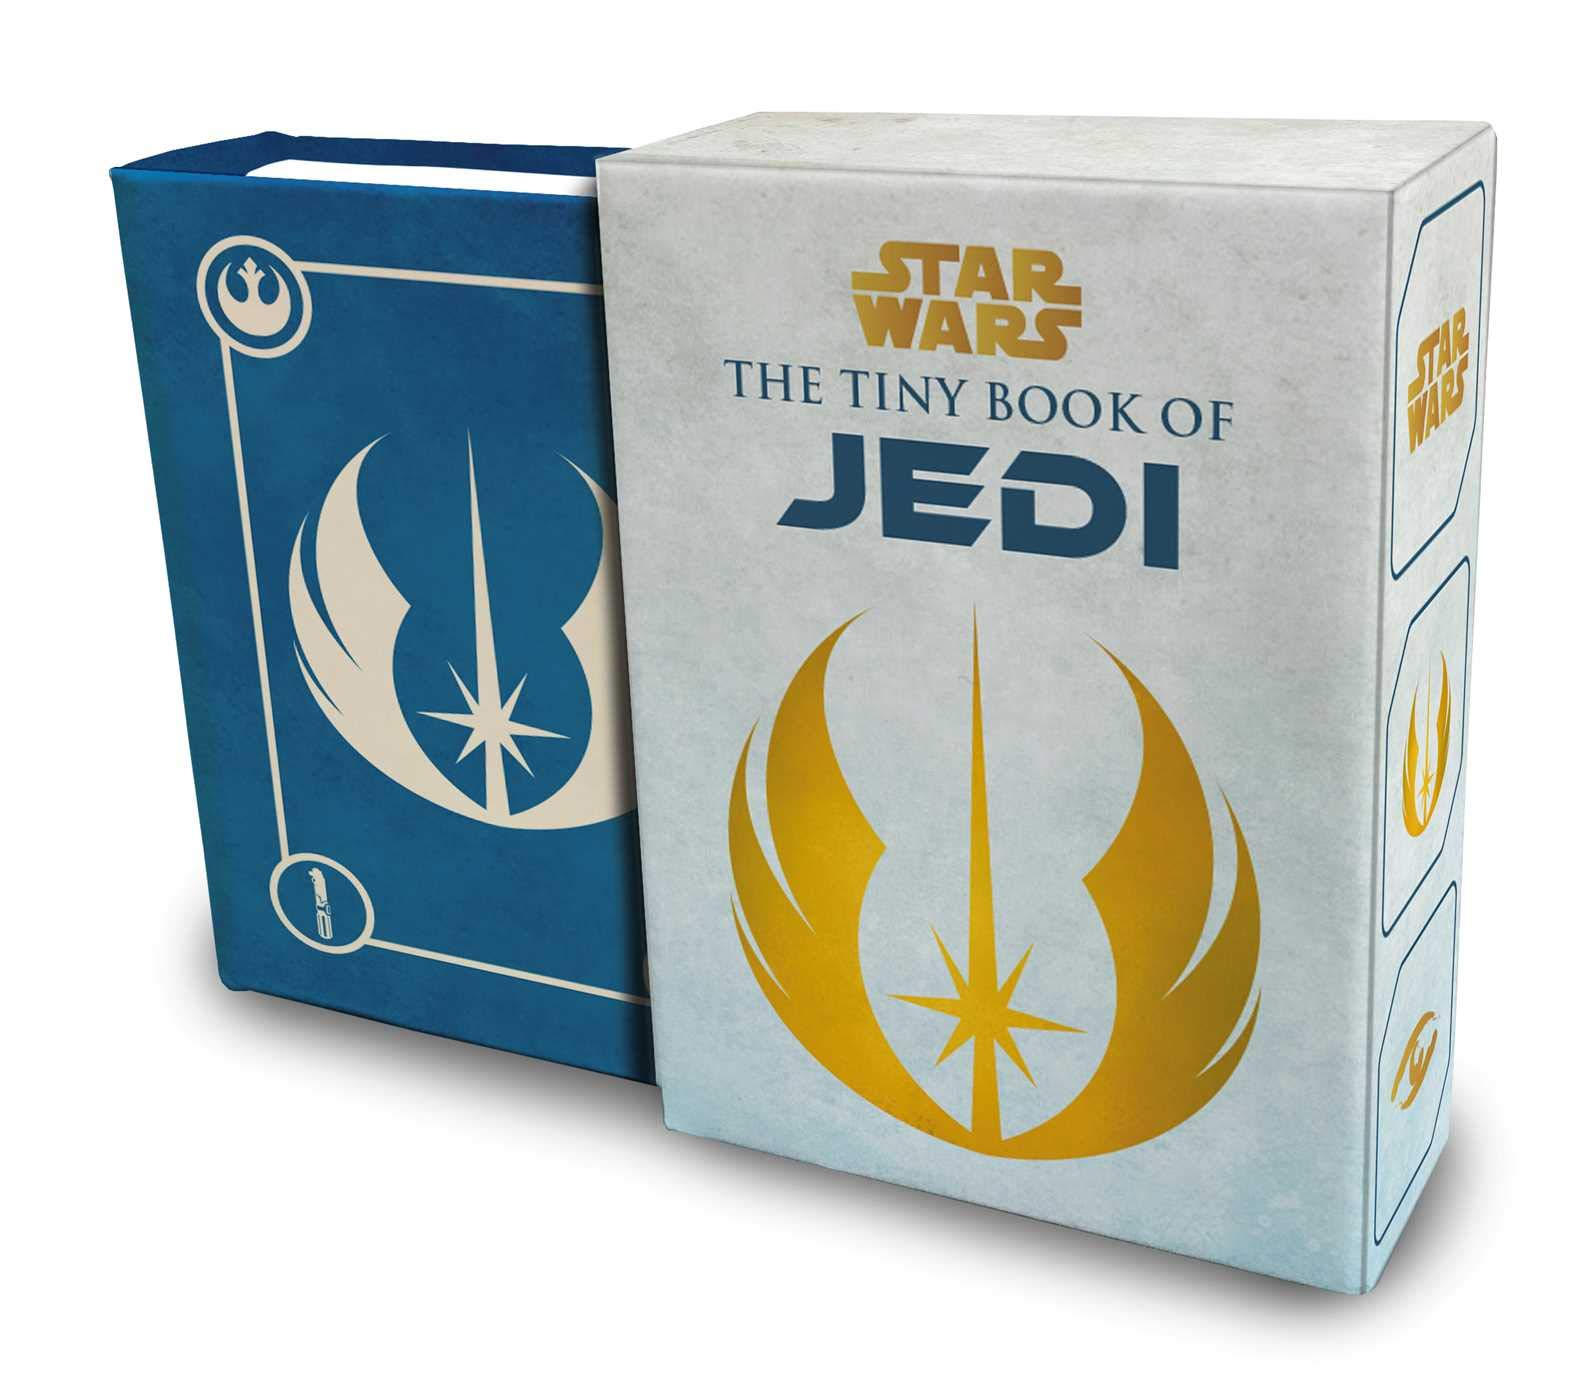 Star Wars: The Tiny Book of Jedi